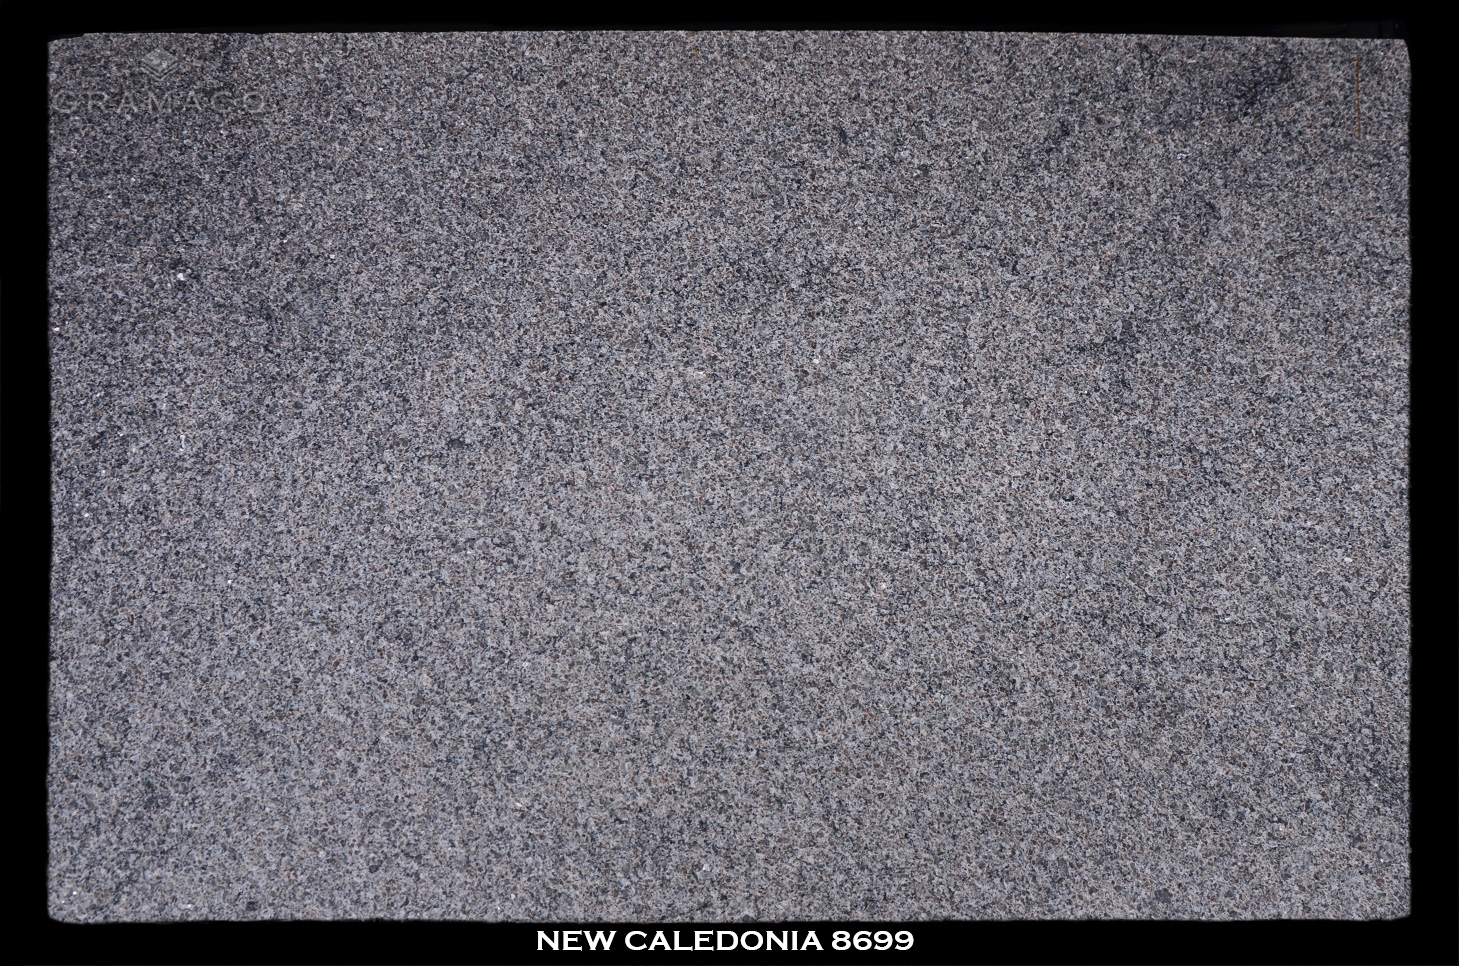 NEW-CALEDONIA-8699--FULL-SLAB-BLACK